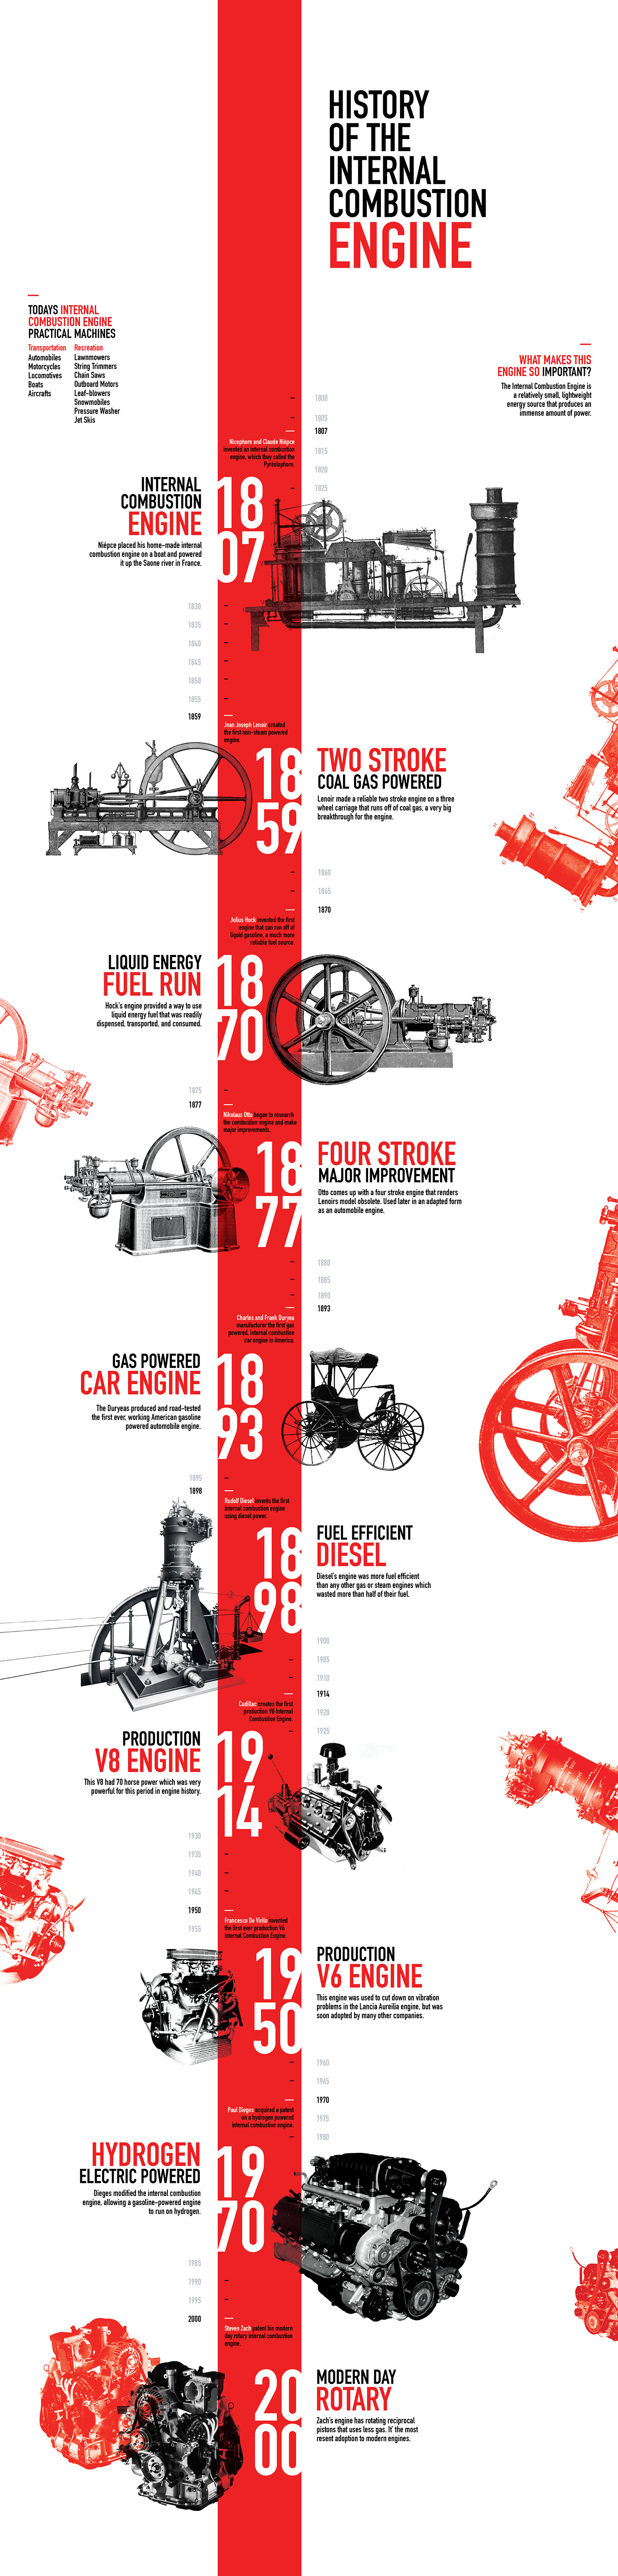 History of The Internal Combustion Engine